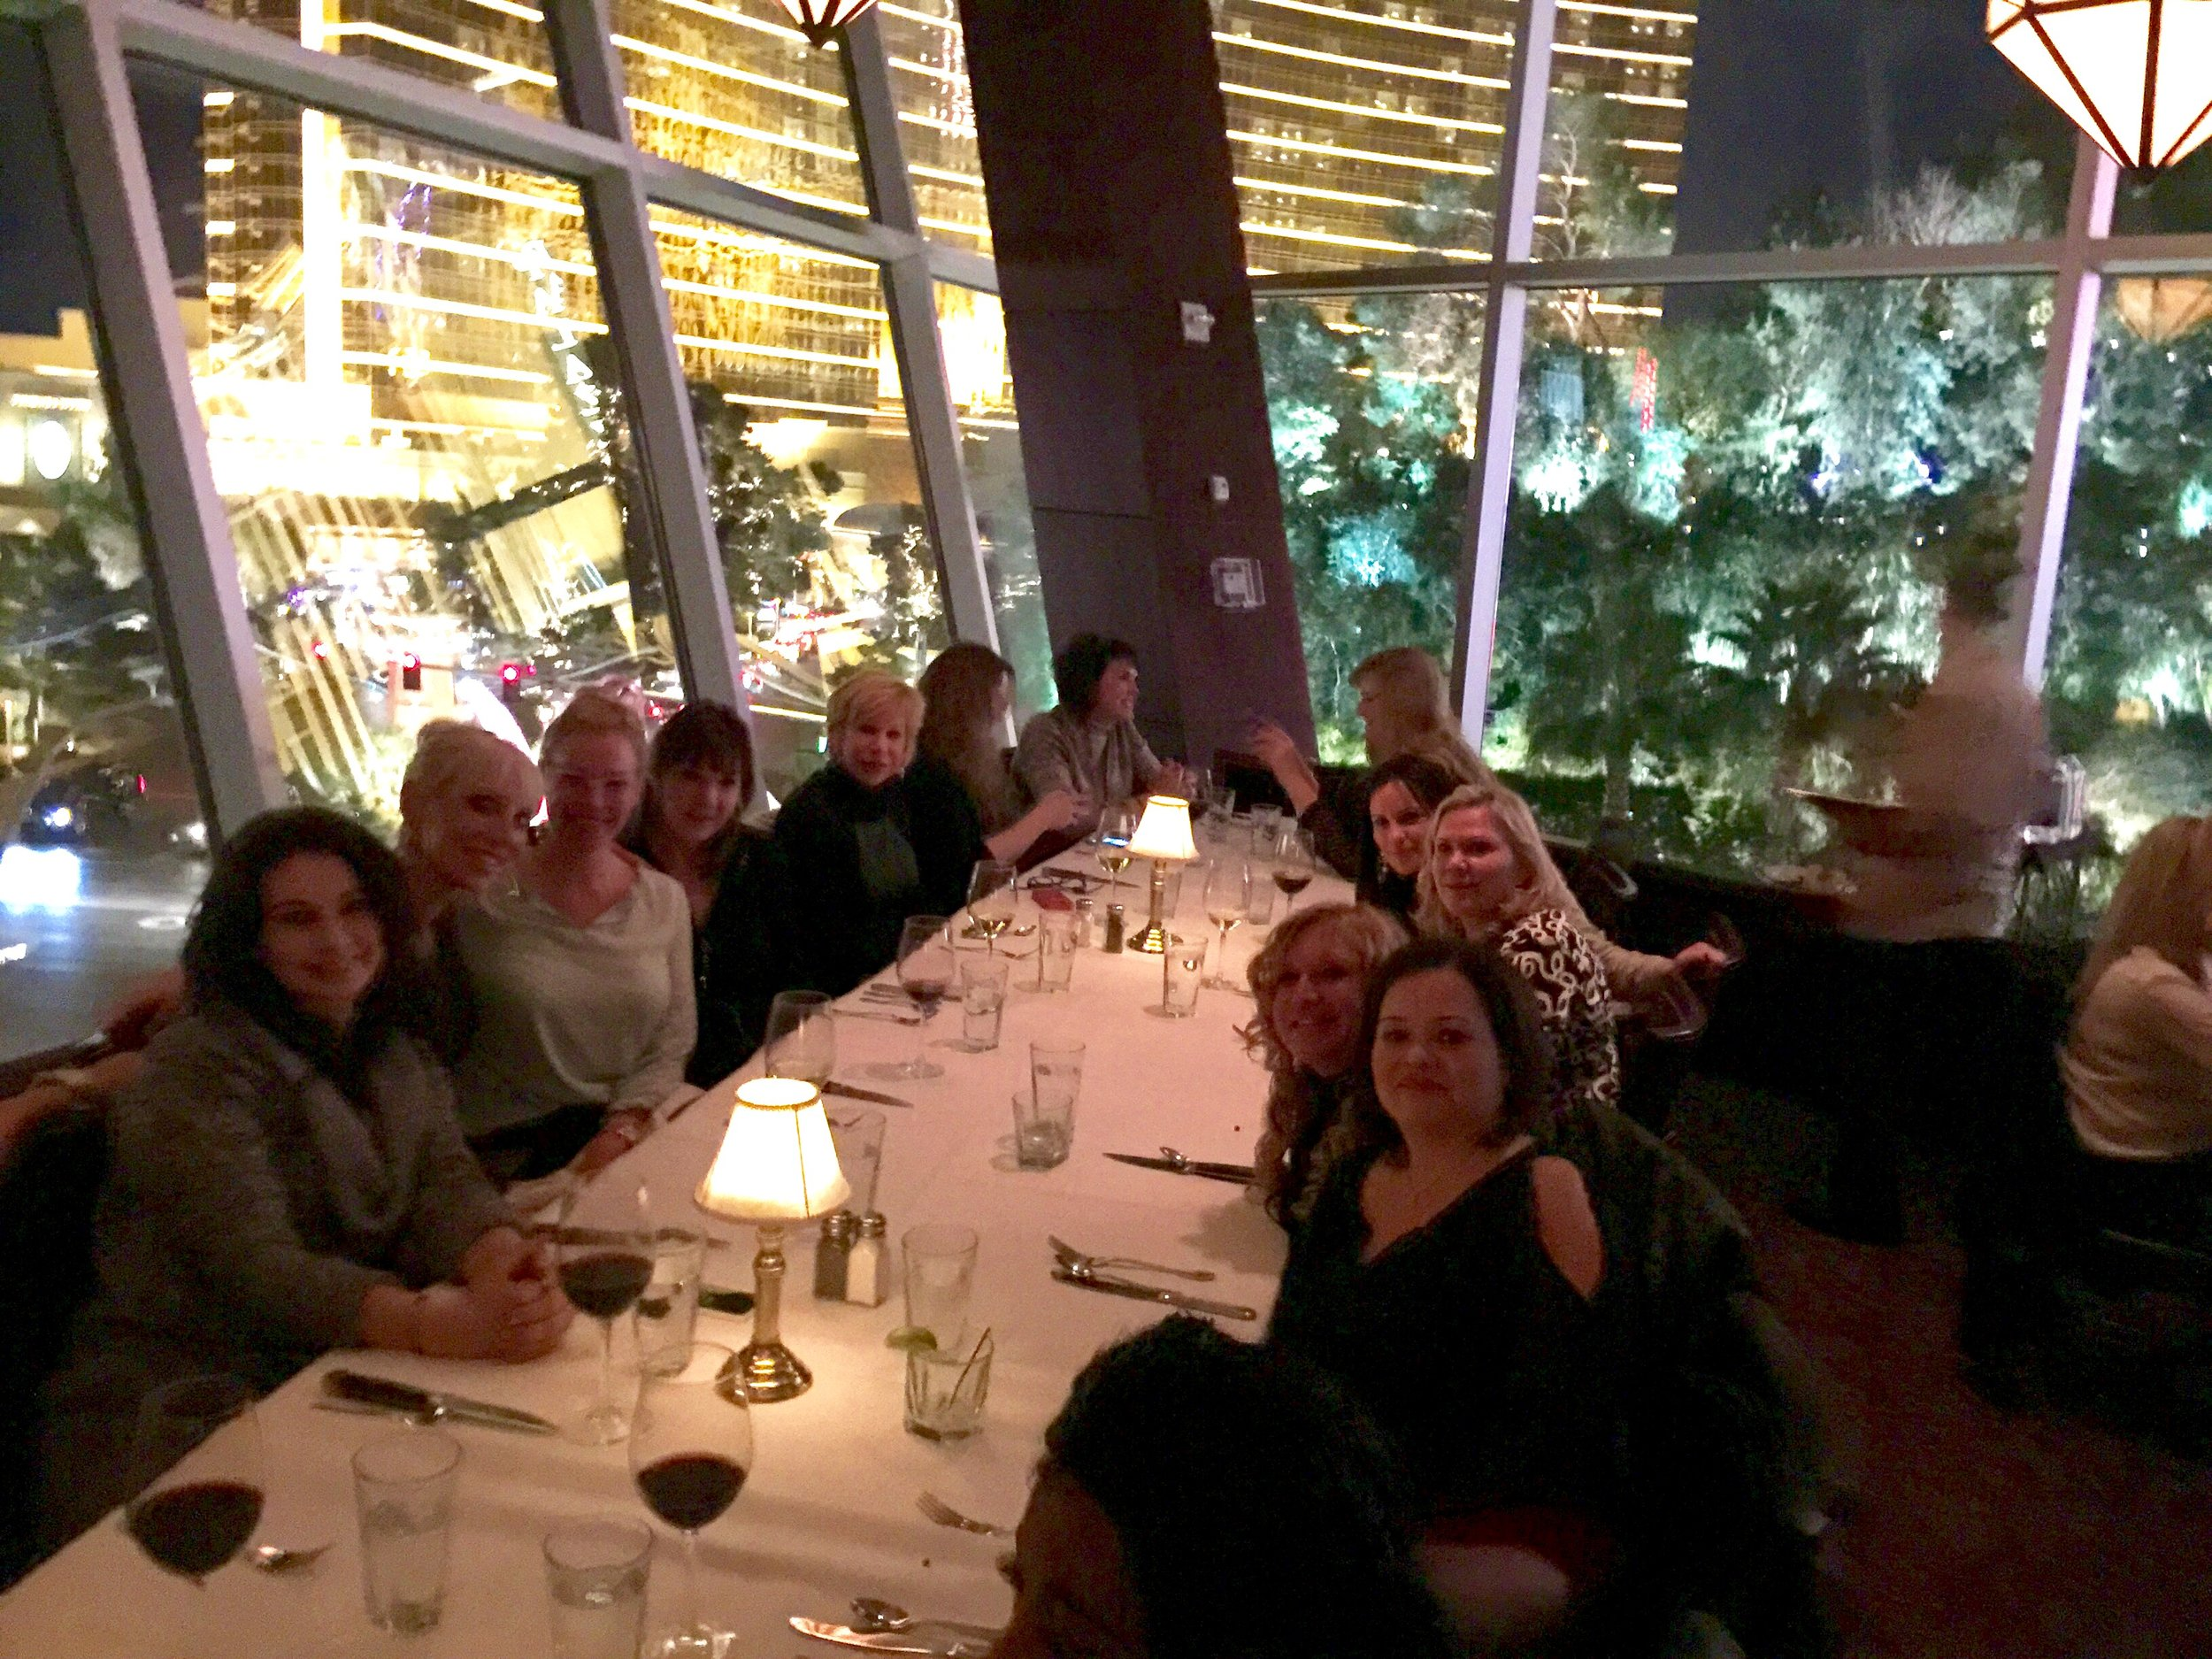 A quick photo from our dinner at Capital Grille, with a great view of the Wynn behind us.